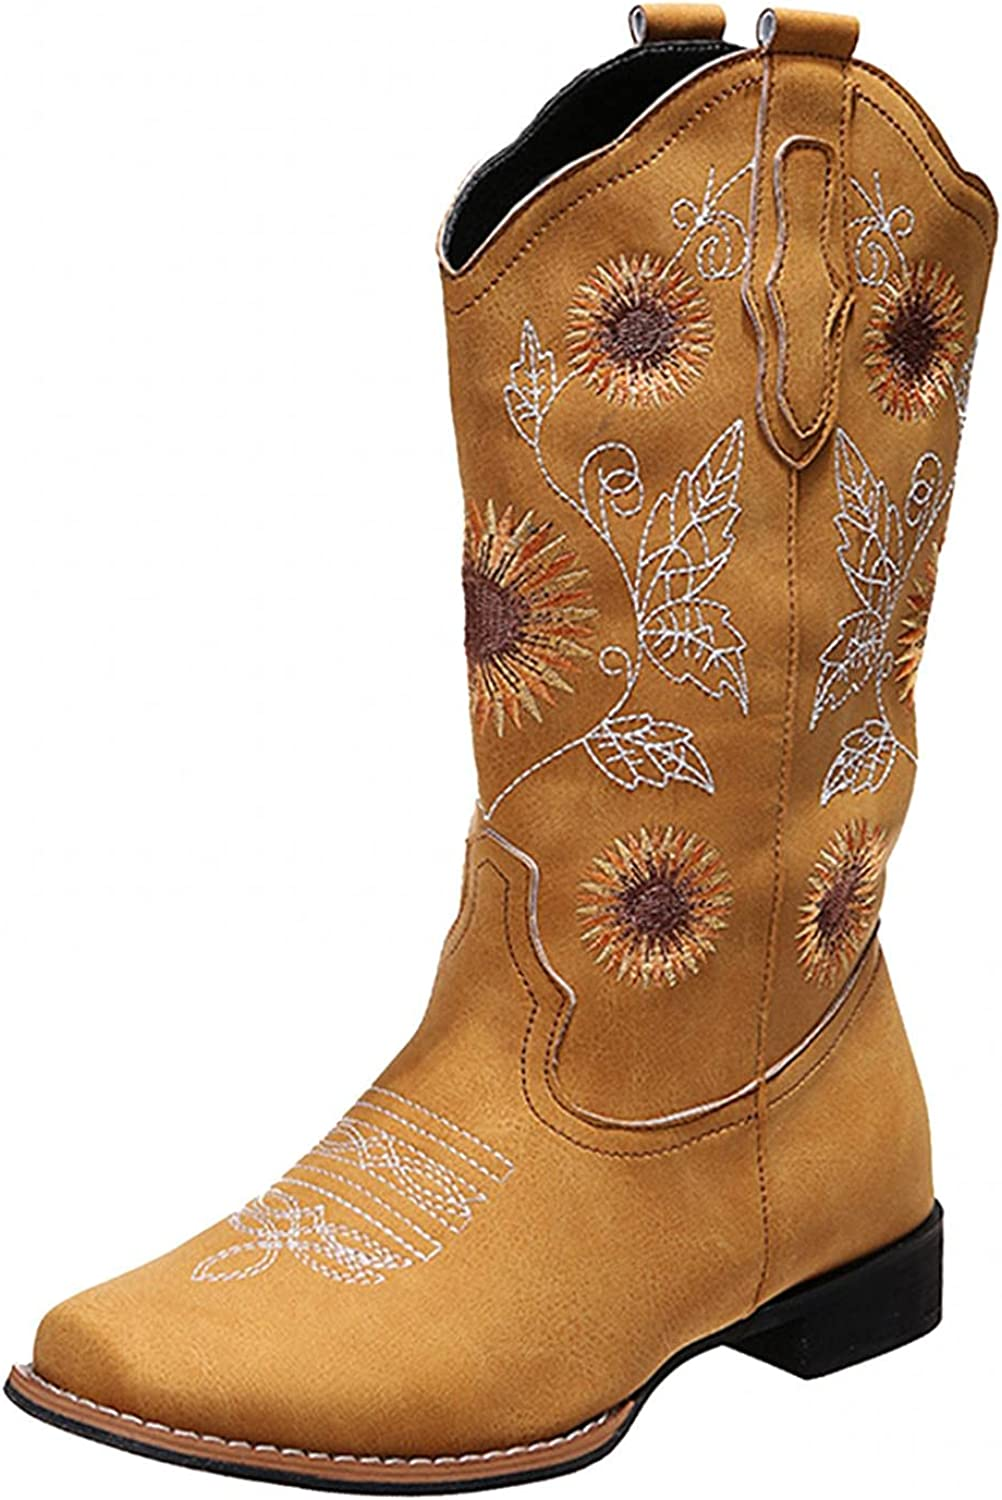 Gibobby Western Boots for Women Sunflowers Embroidery Casual Mid Calf Boots Chunky Heel Pointed Toe Slip On Cowboy Boots